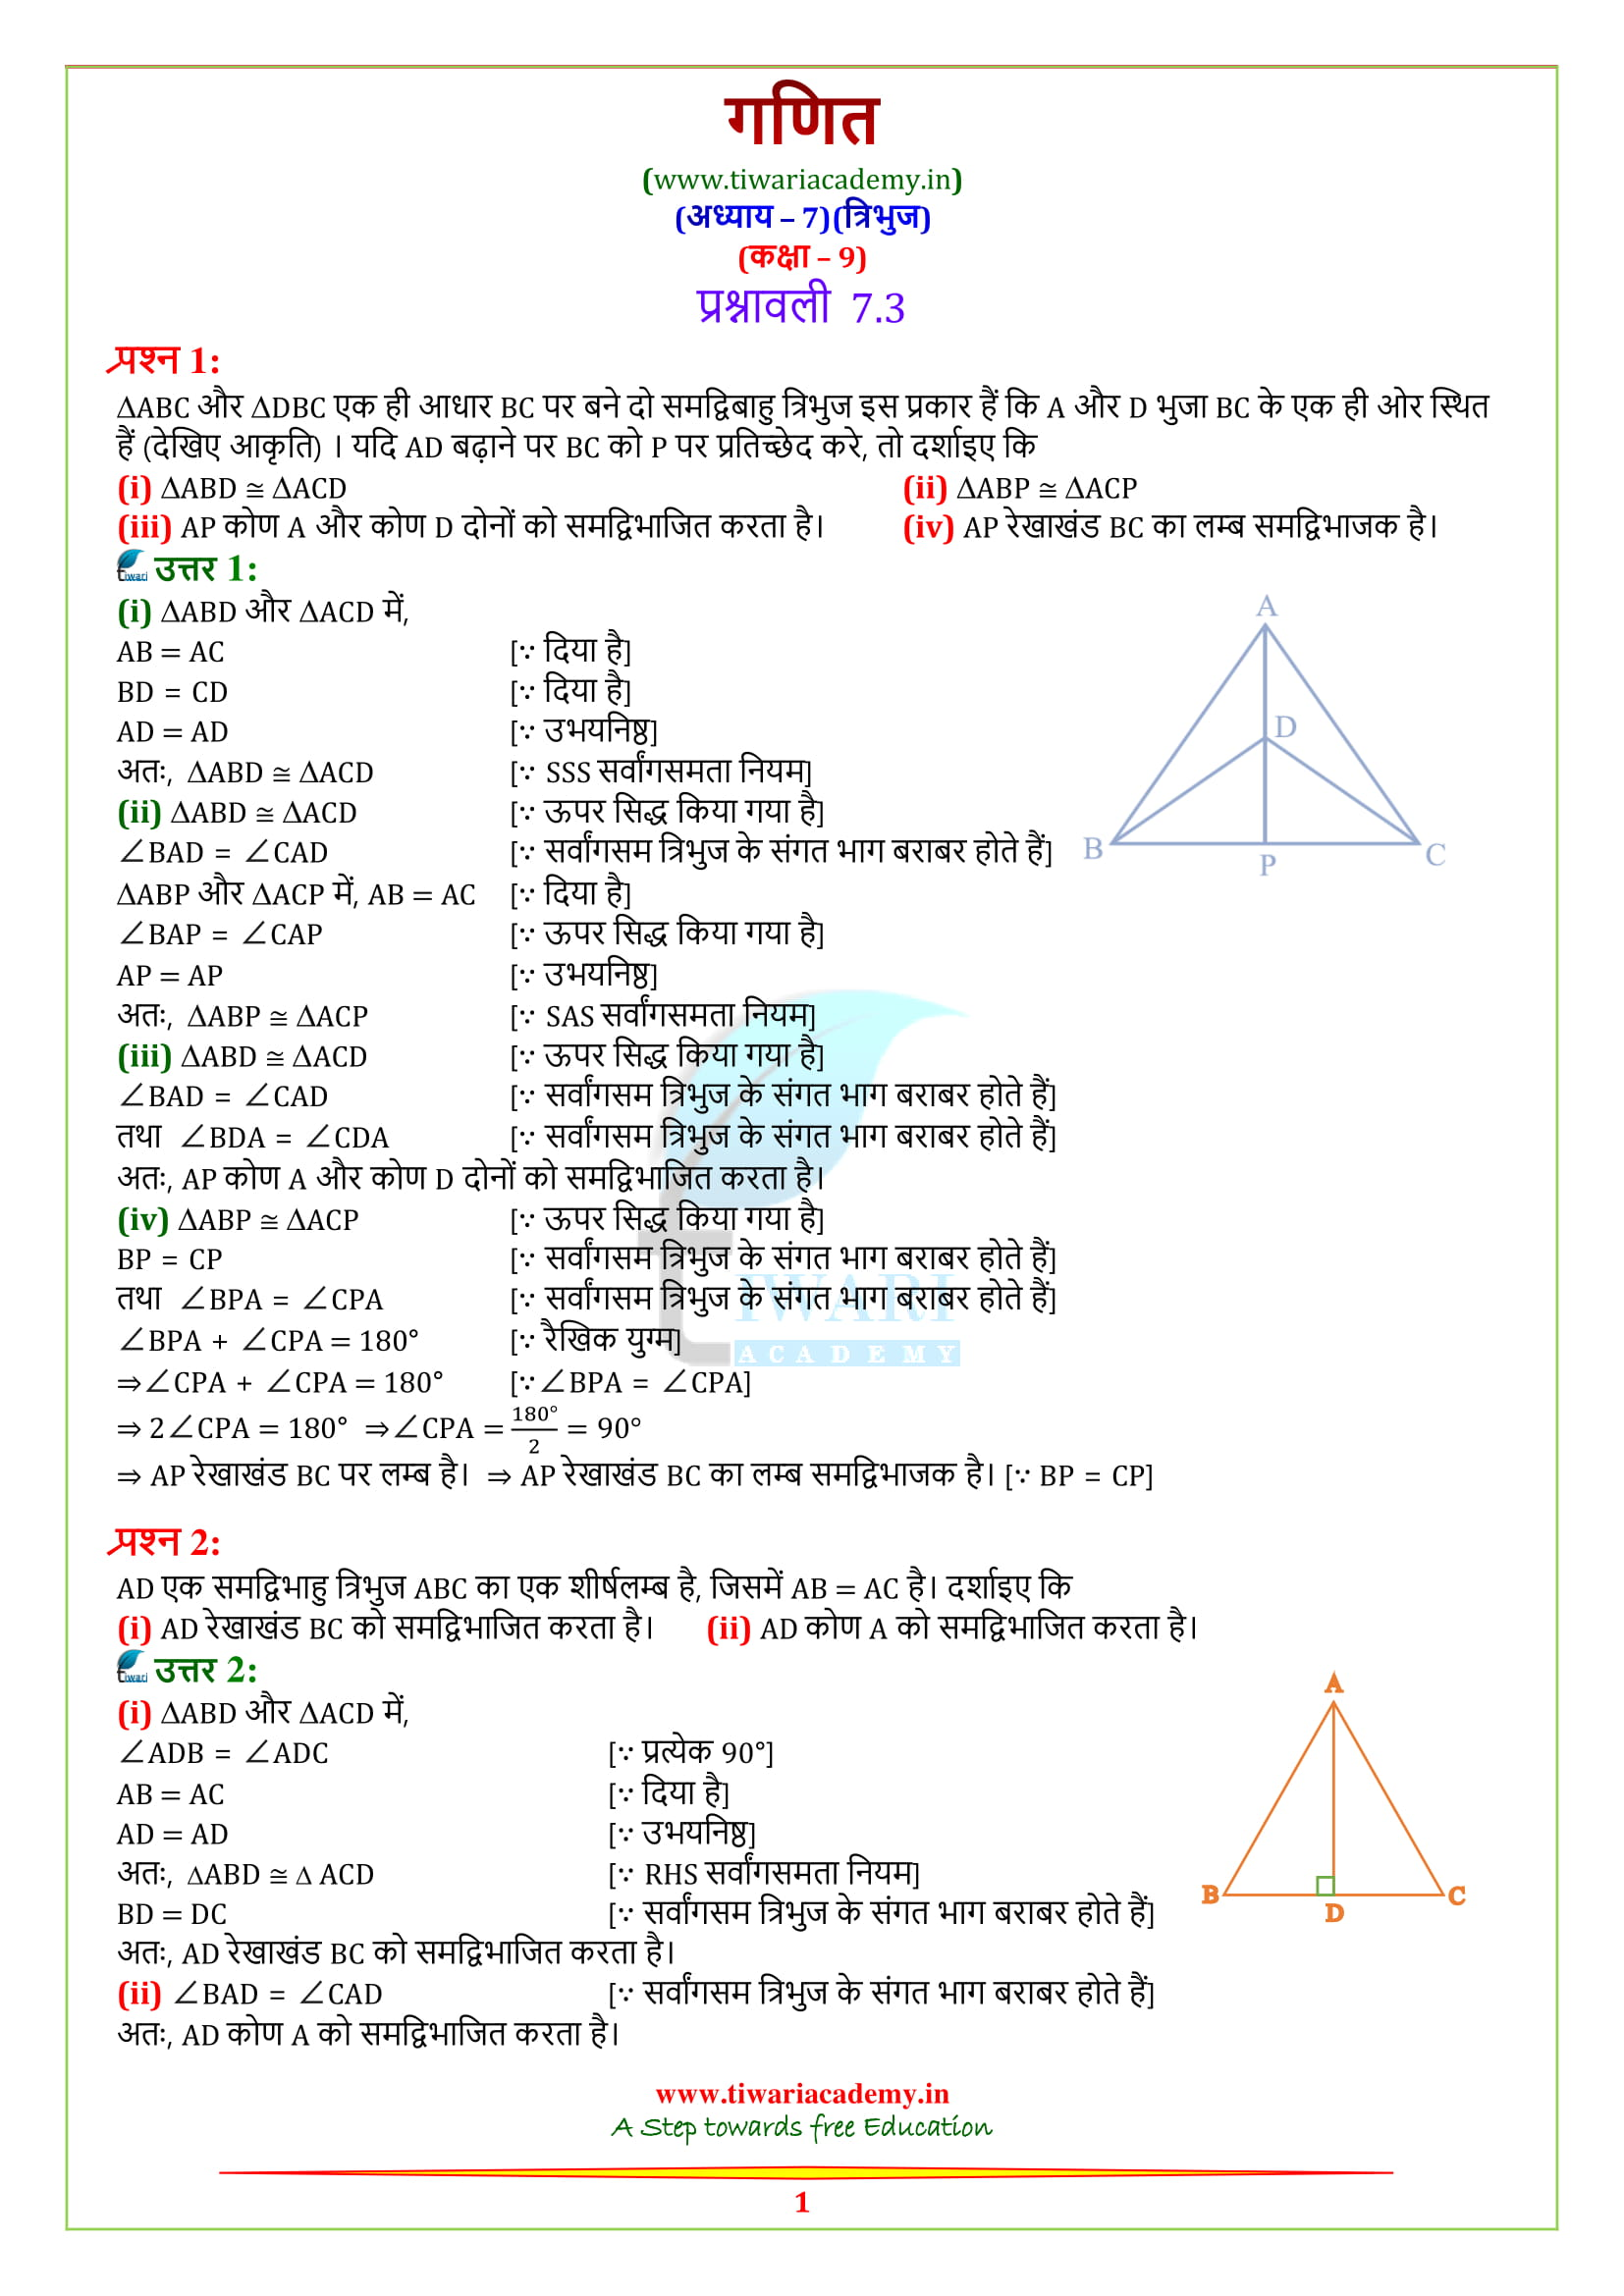 9 Maths Exercise 7.3 solutions